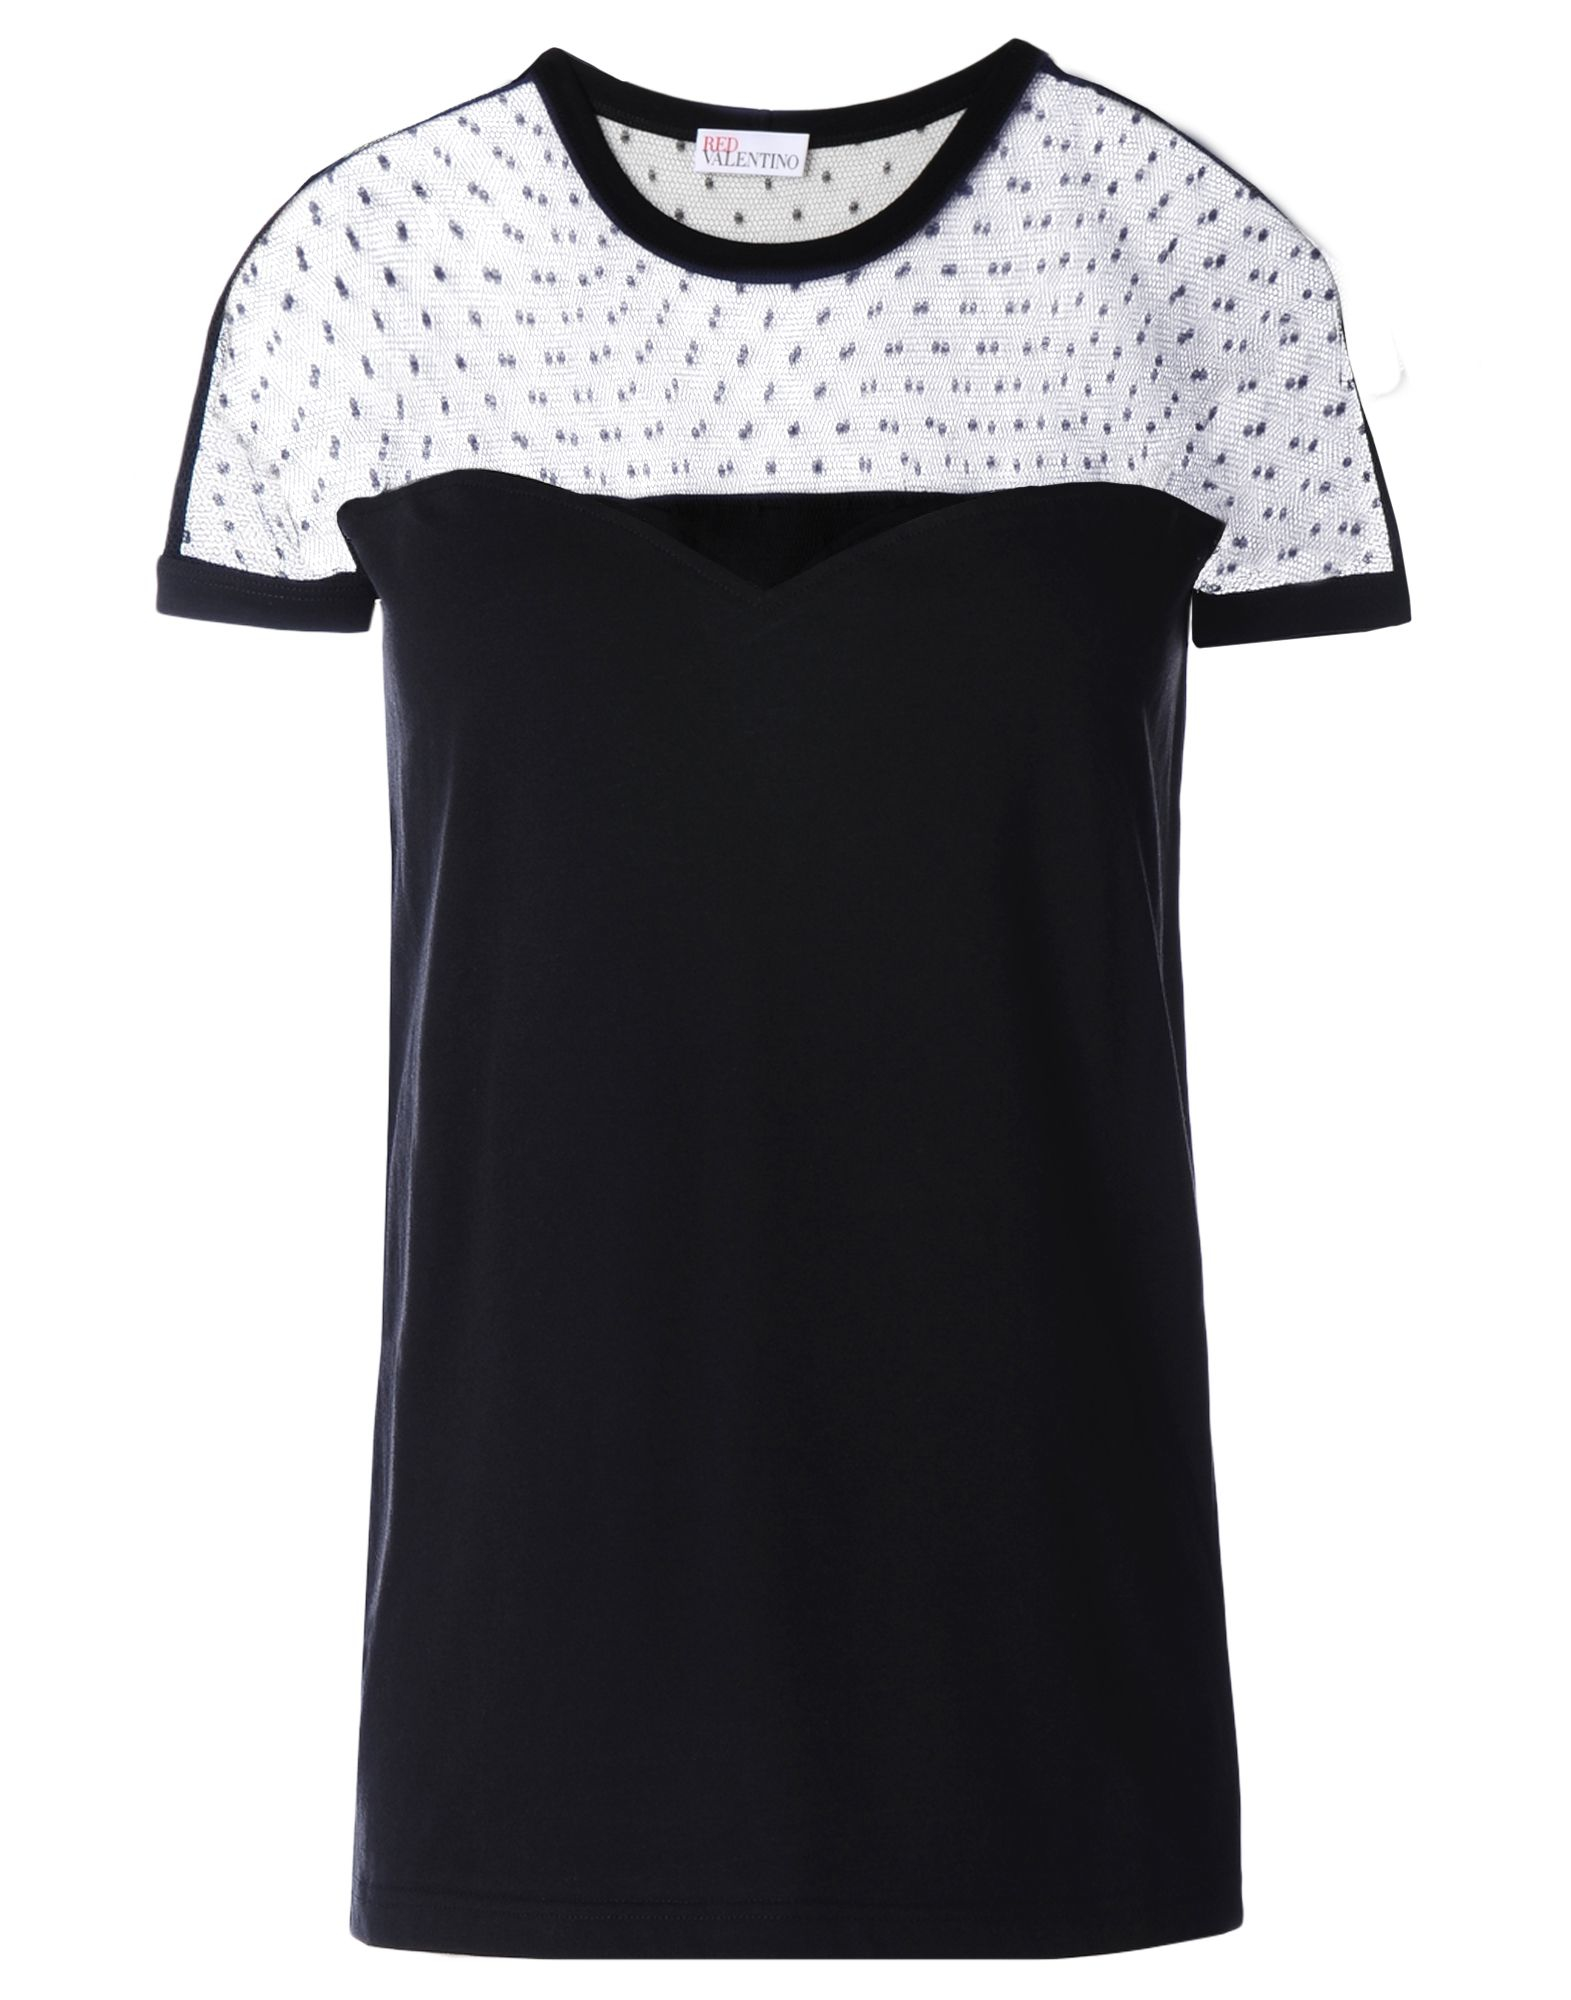 Red valentino tulle detail t shirt in black lyst for Red valentino t shirt